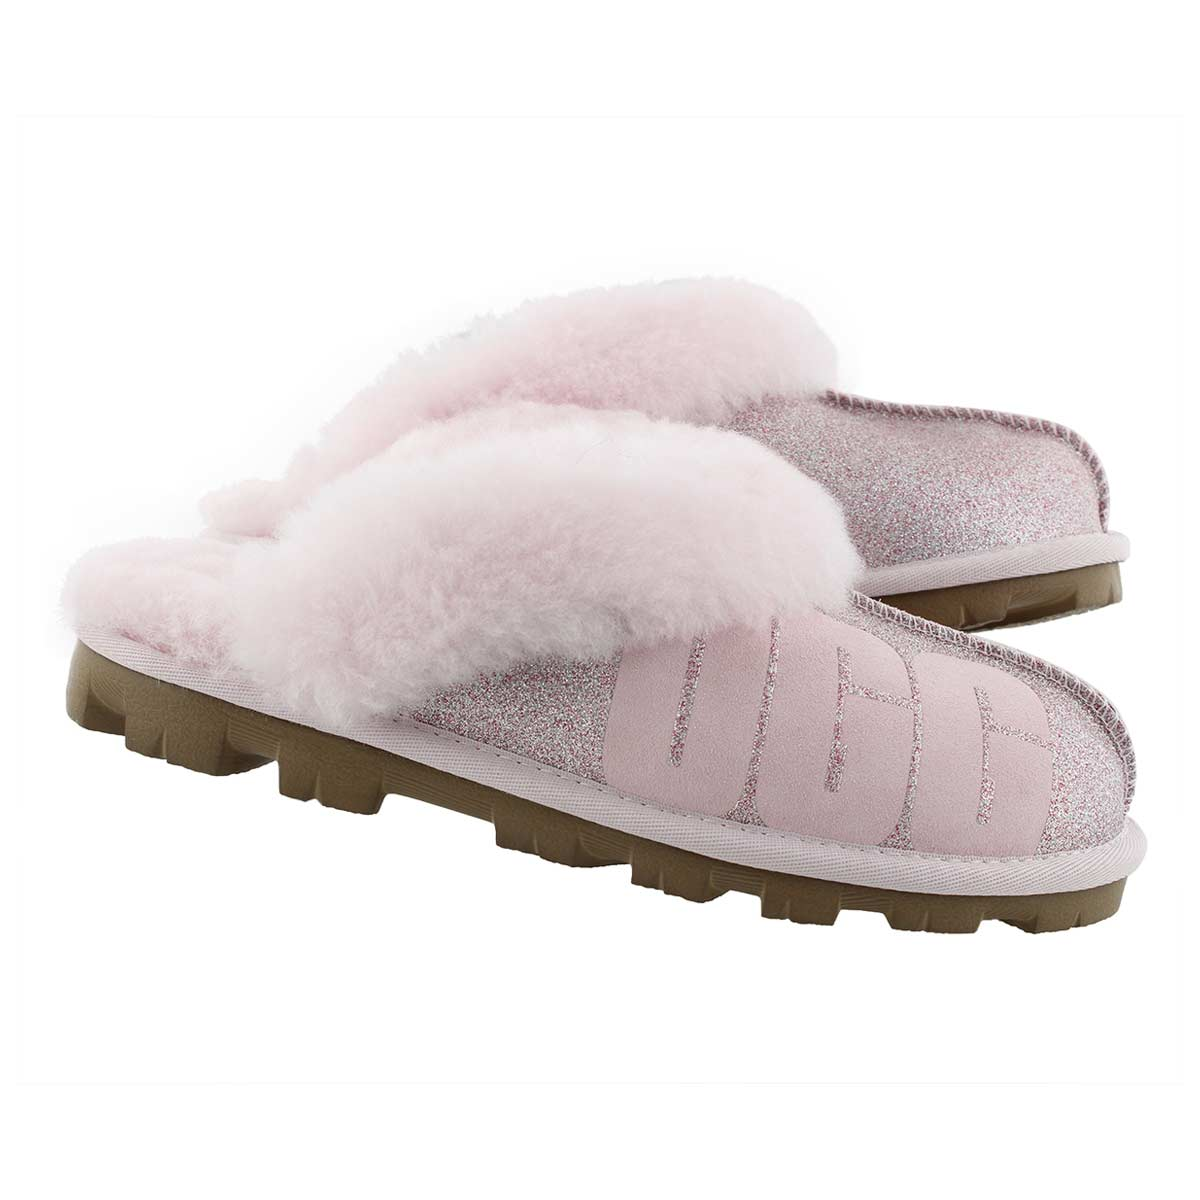 aa25a5c00dc Women's COQUETTE UGG SPARKLE sheepskin slippers